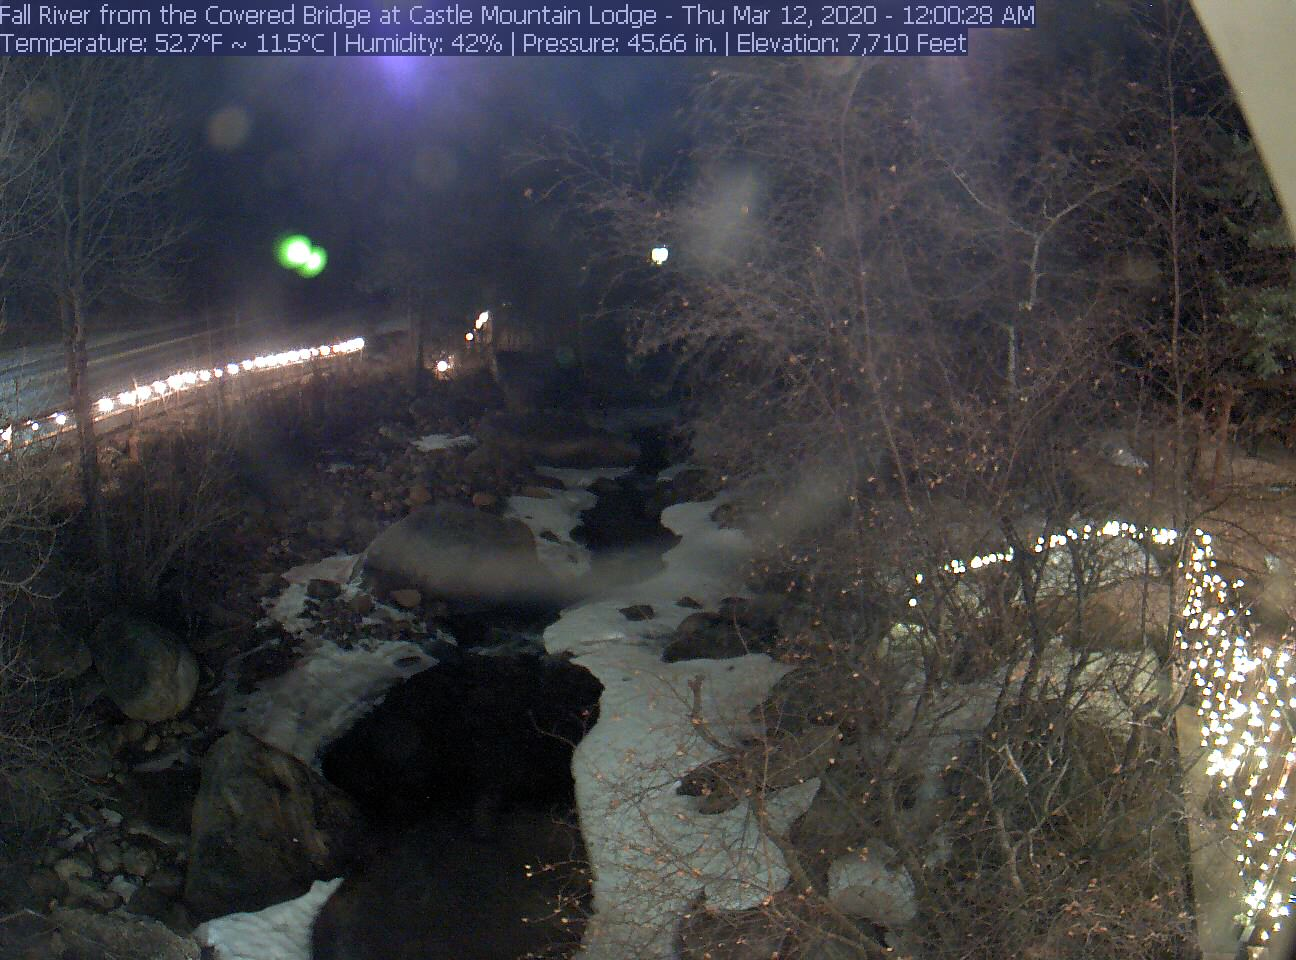 Castle Mountain Lodge Fall River Webcam